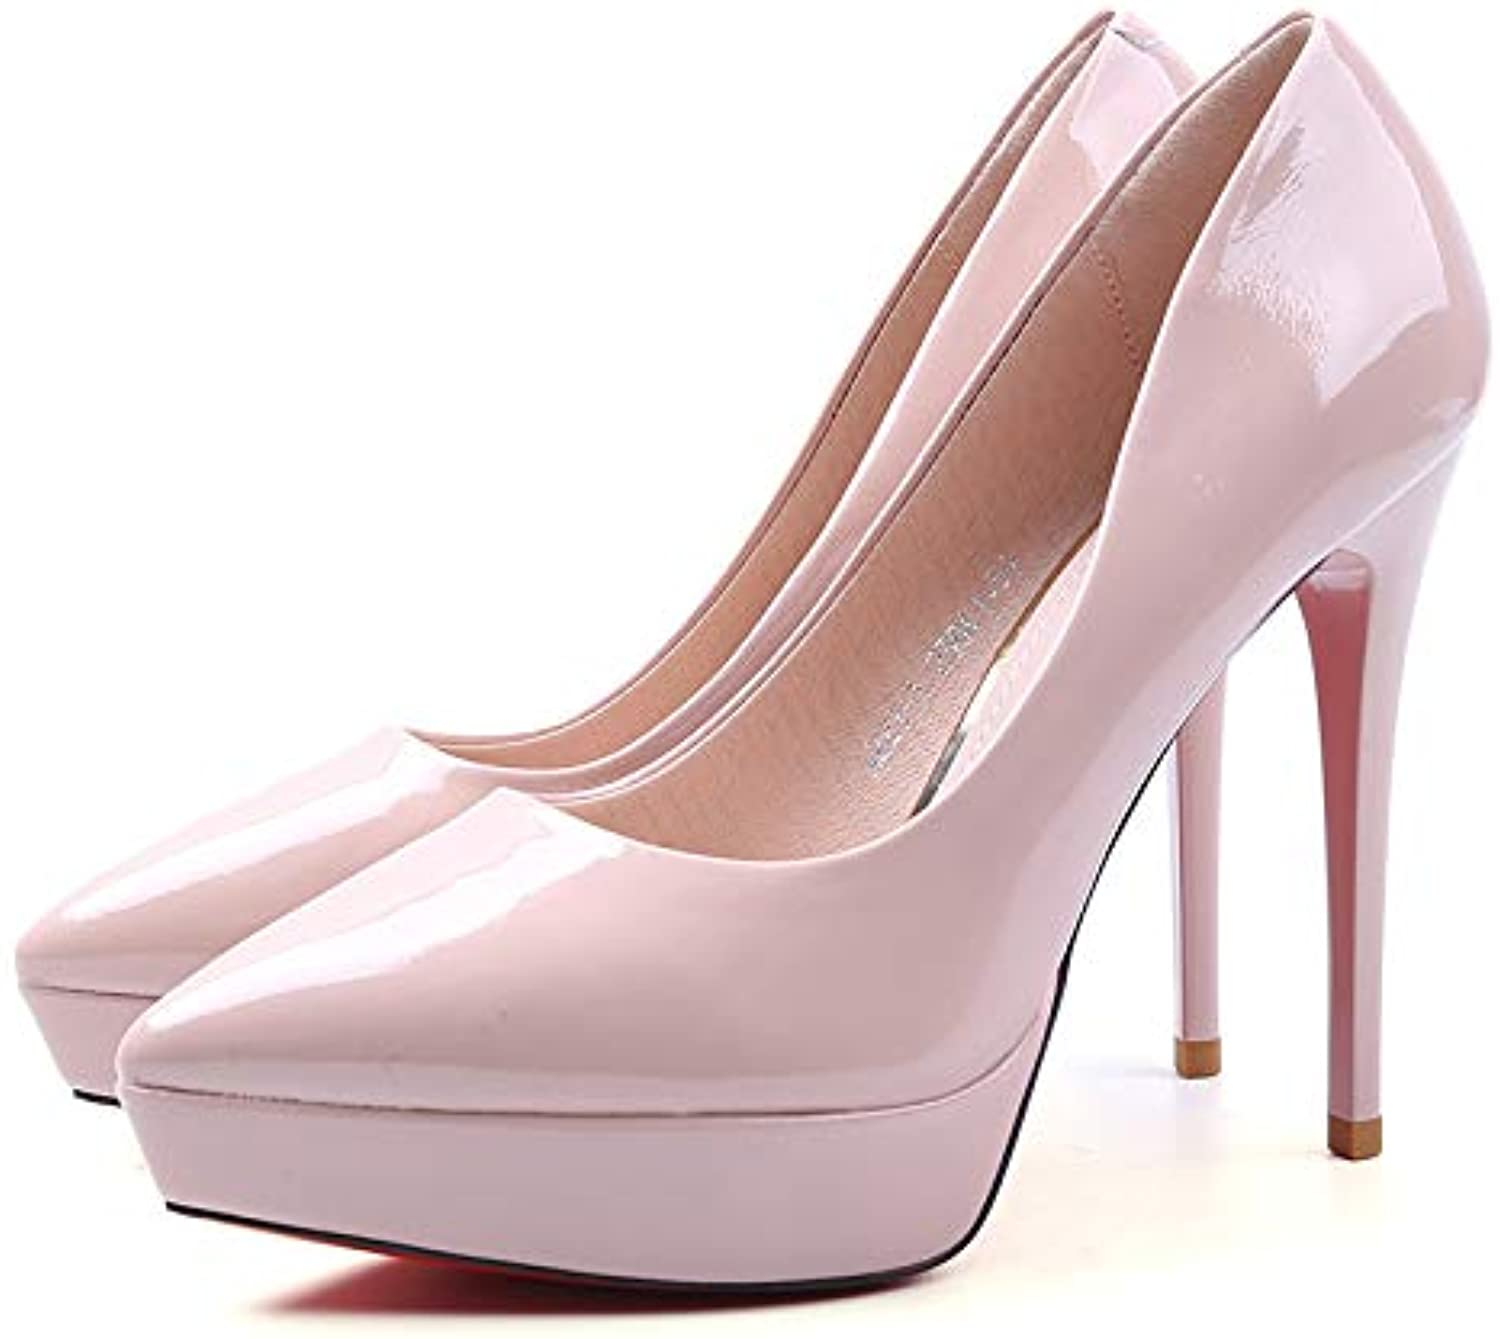 c41b13b02721 FLYRCX European fashion pointed pointed pointed shallow mouth temperament  single shoes temperament elegant sexy stiletto heels... B07HQXMXZF Parent  14840d